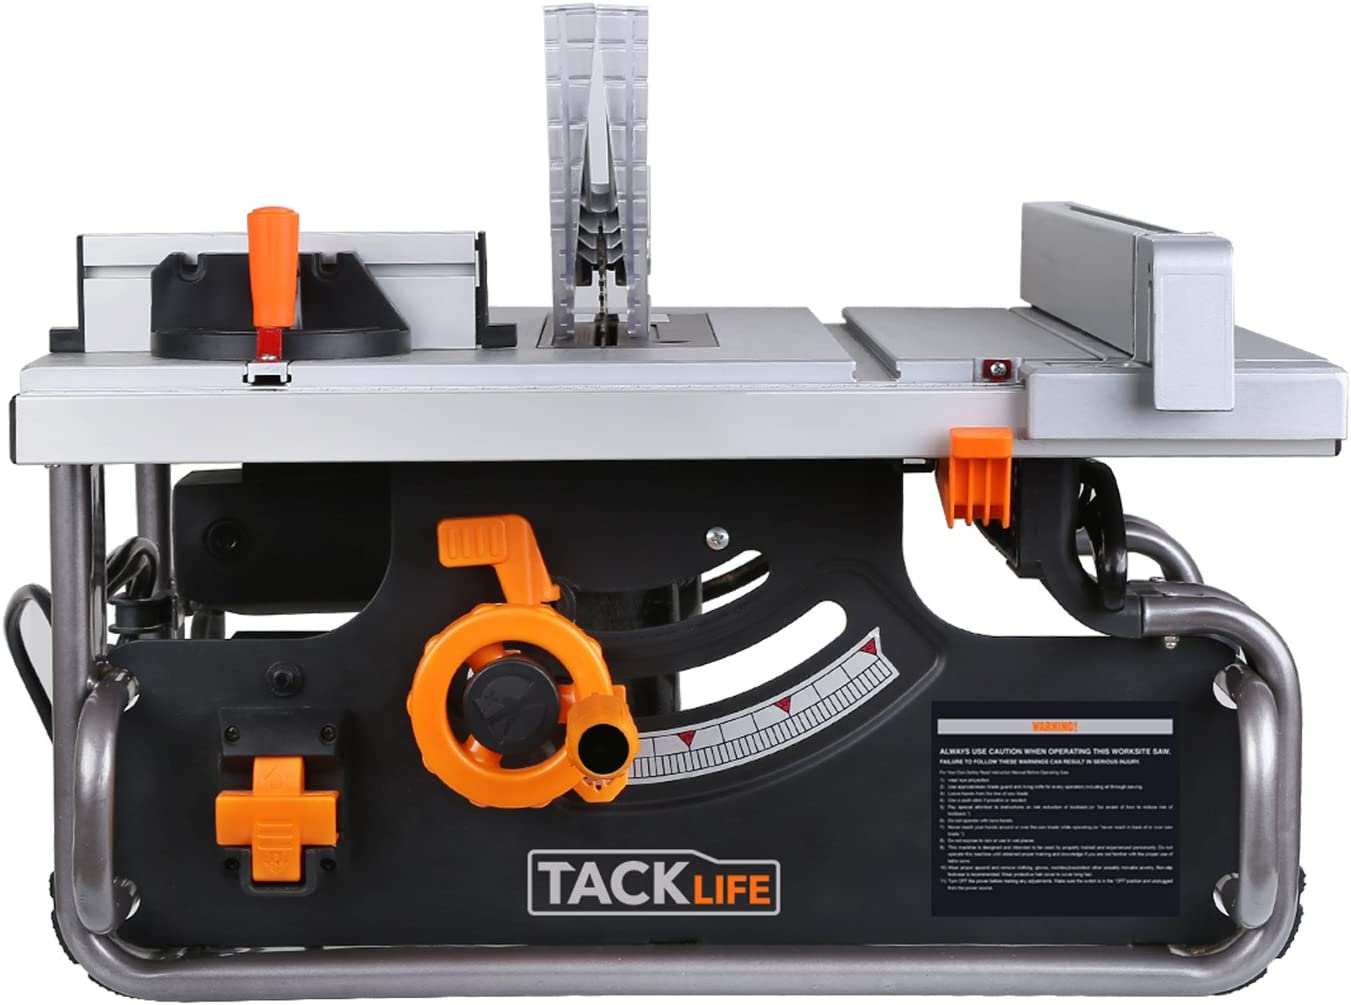 """Tacklife PTSG1A 10"""" Table Saw with 40""""X20"""" Max Extendable, 15 Amp 120V, Extra Carbon Brush, Table Saws under $300"""